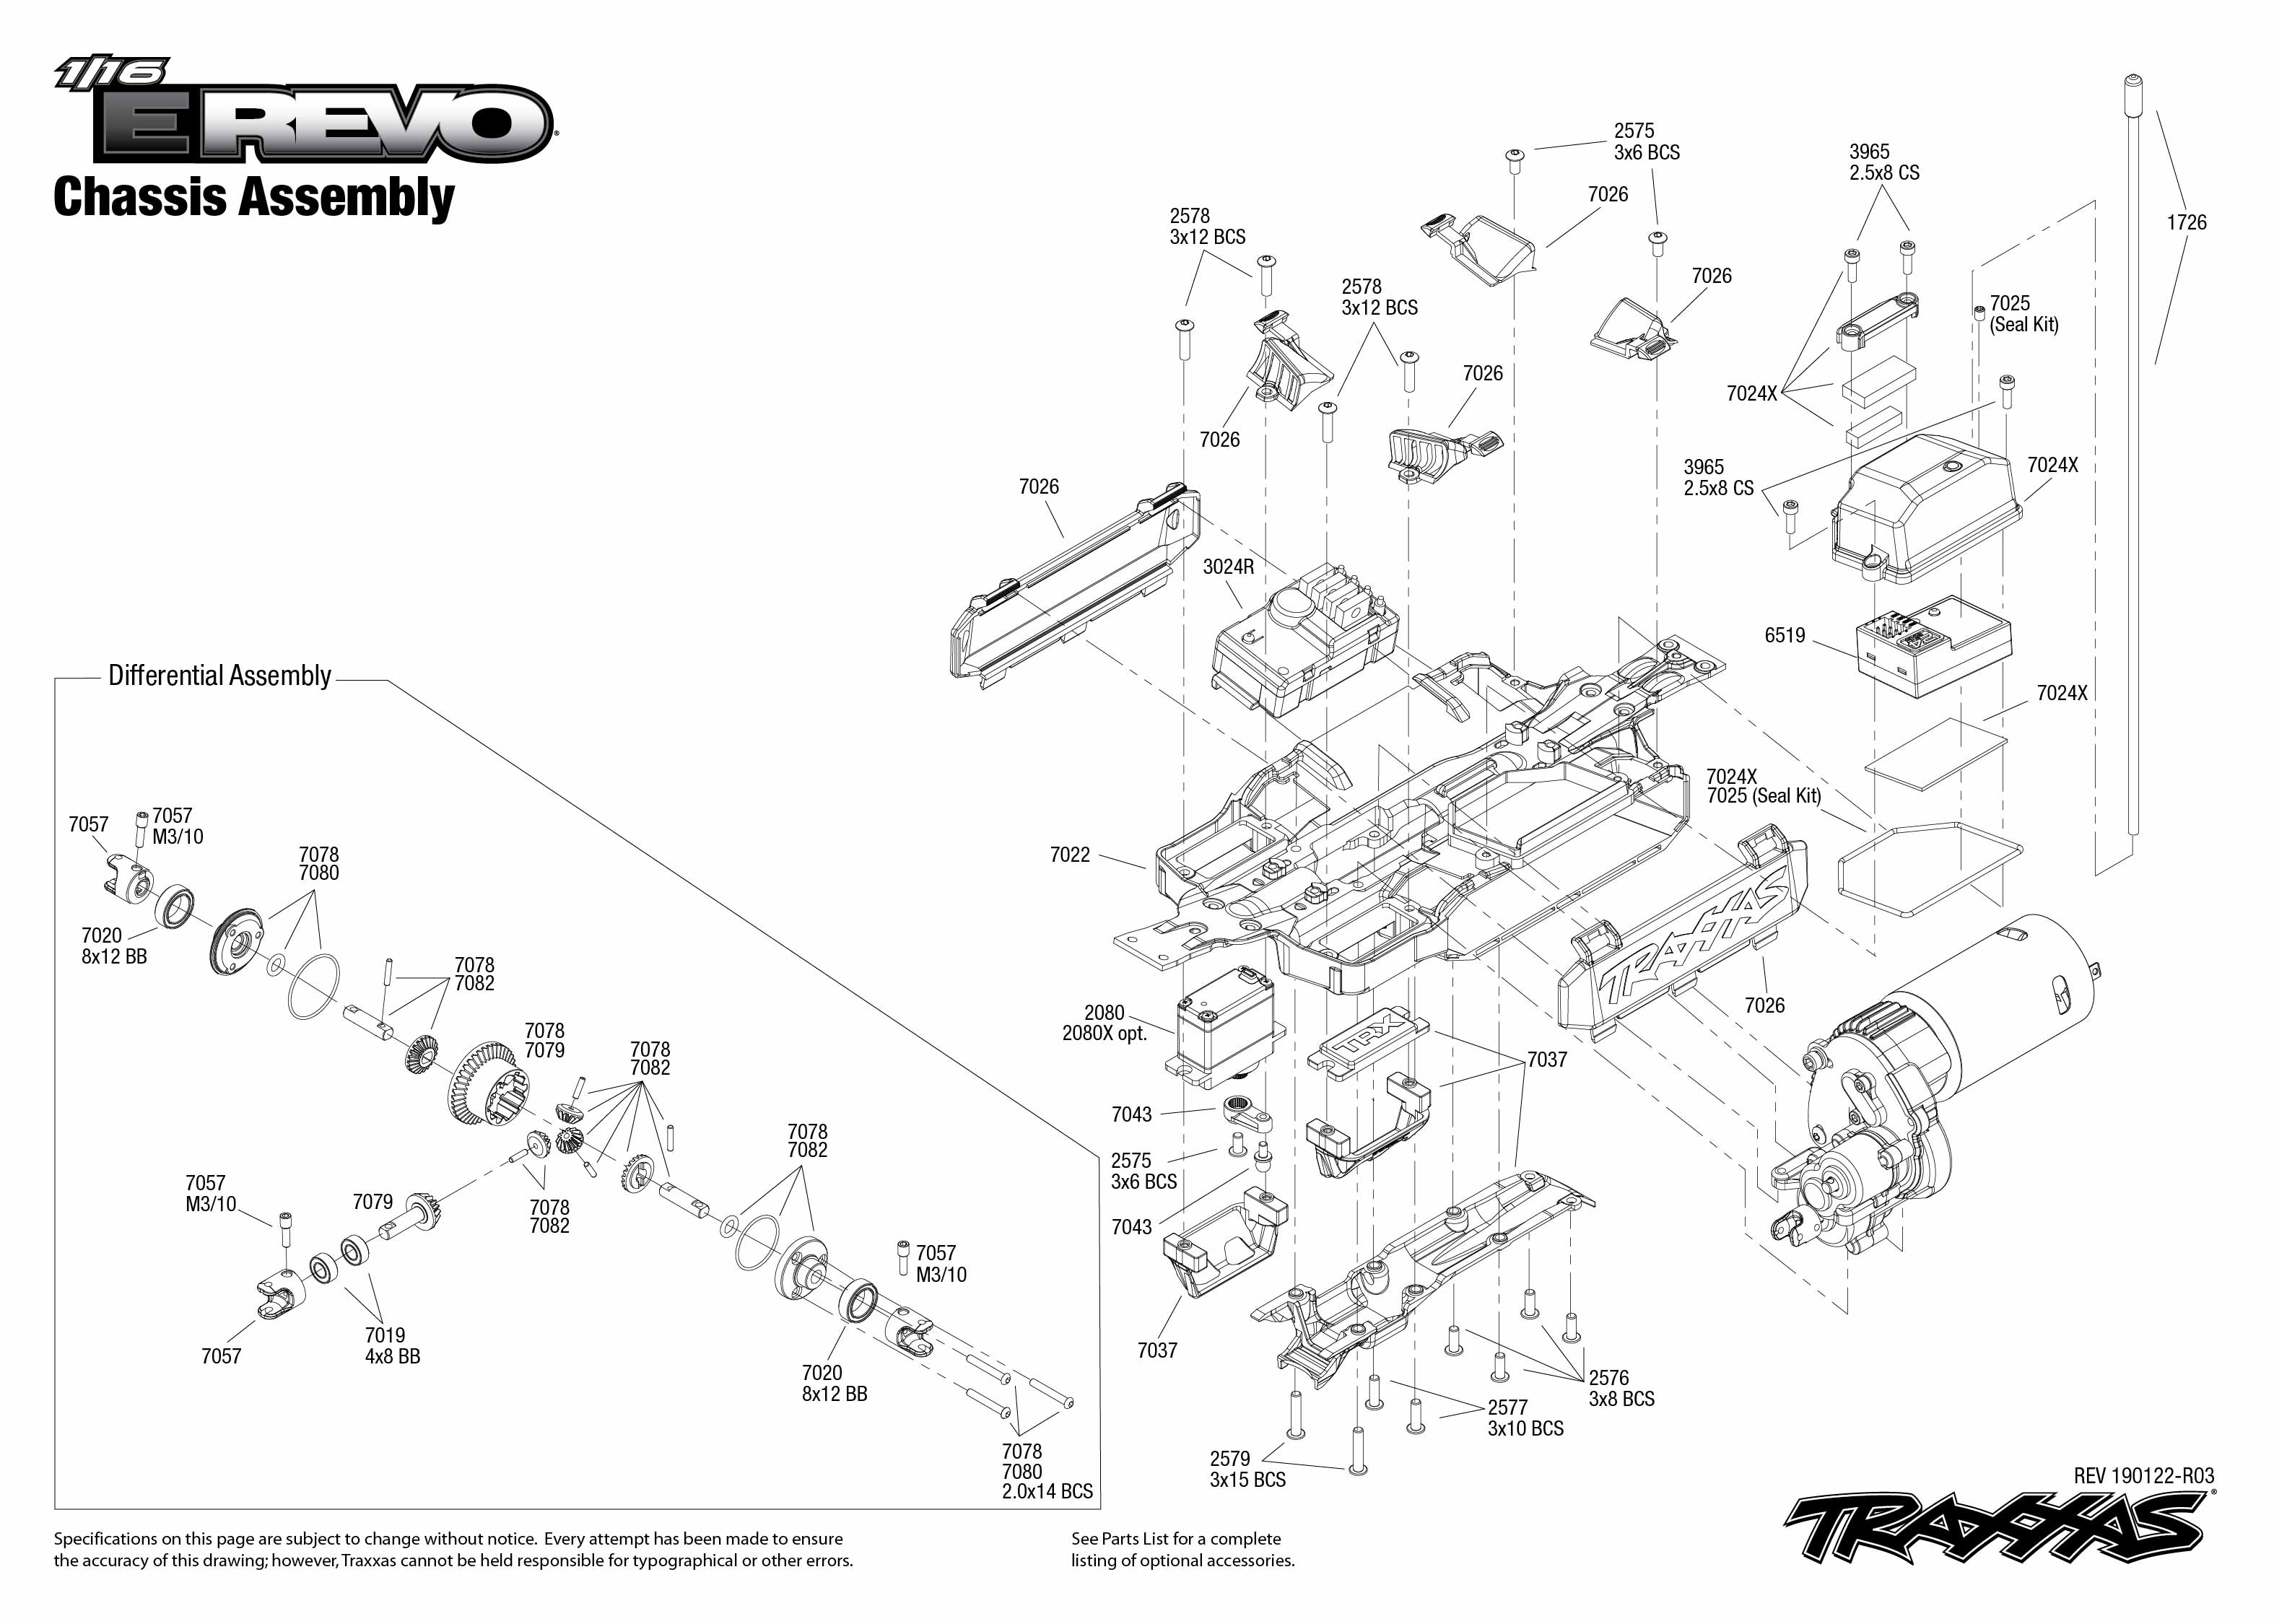 1 16 E Revo 1 Chassis Assembly Exploded View